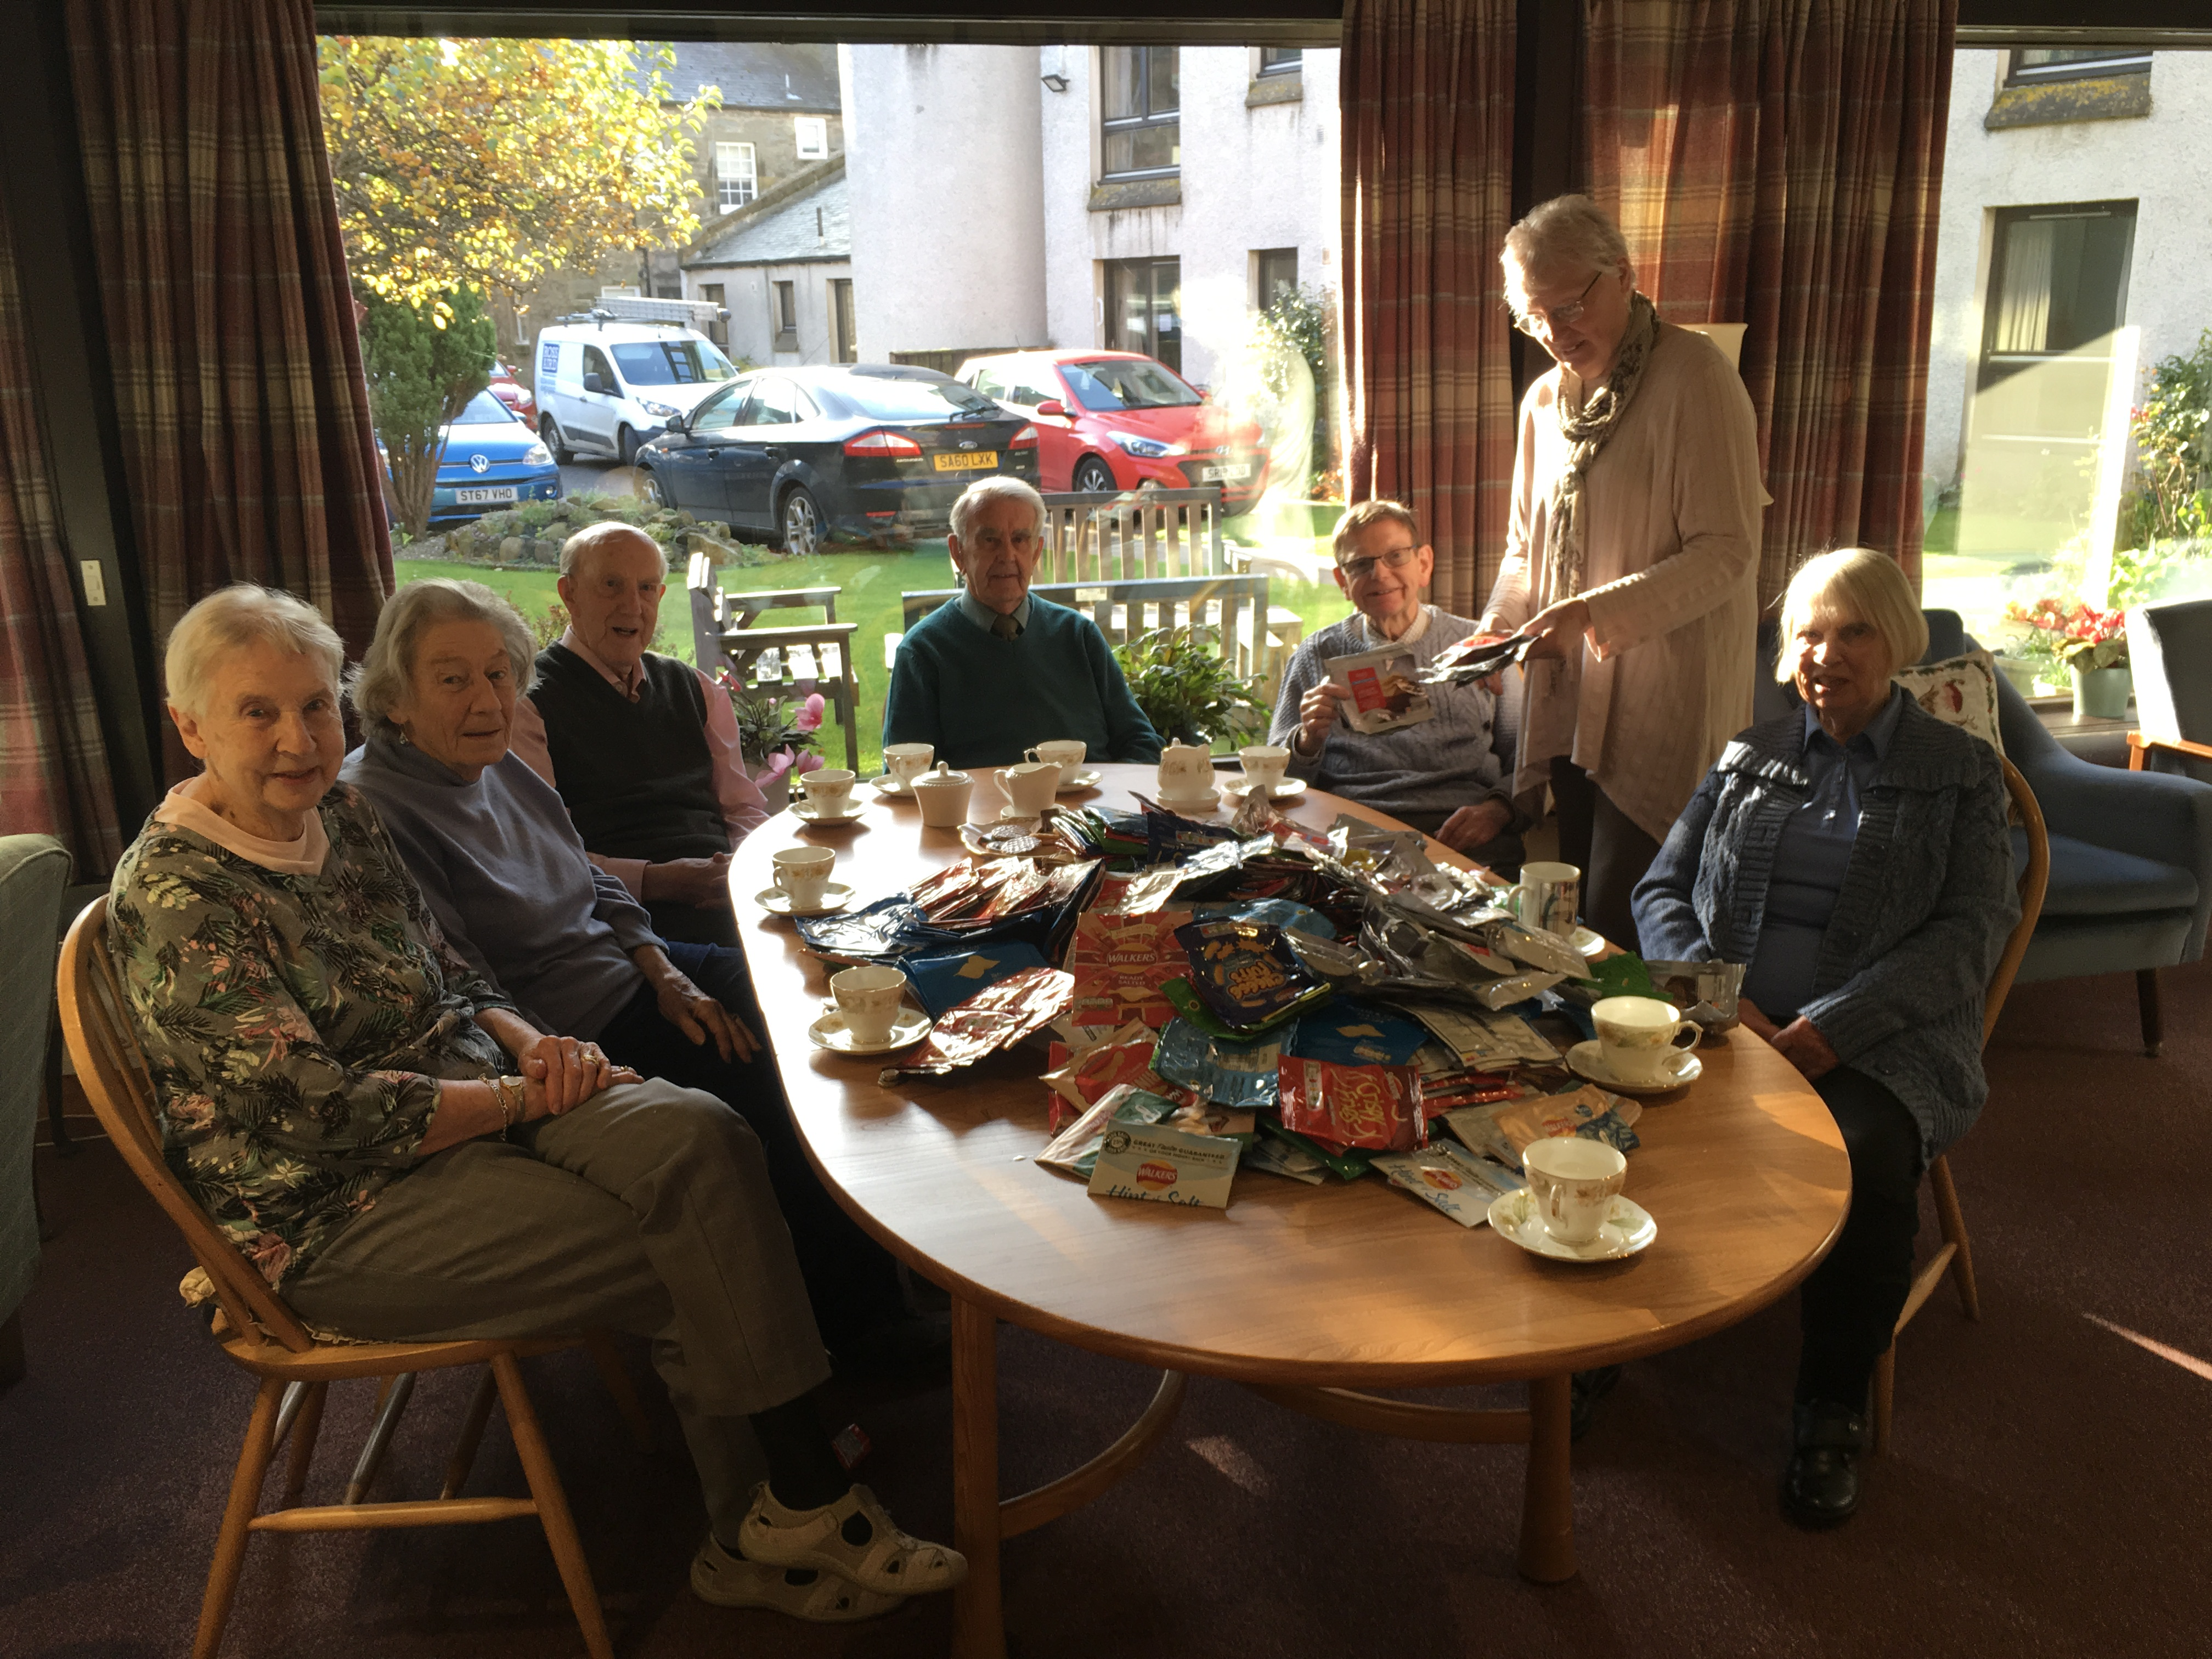 Residents of Argyle Court with their haul.